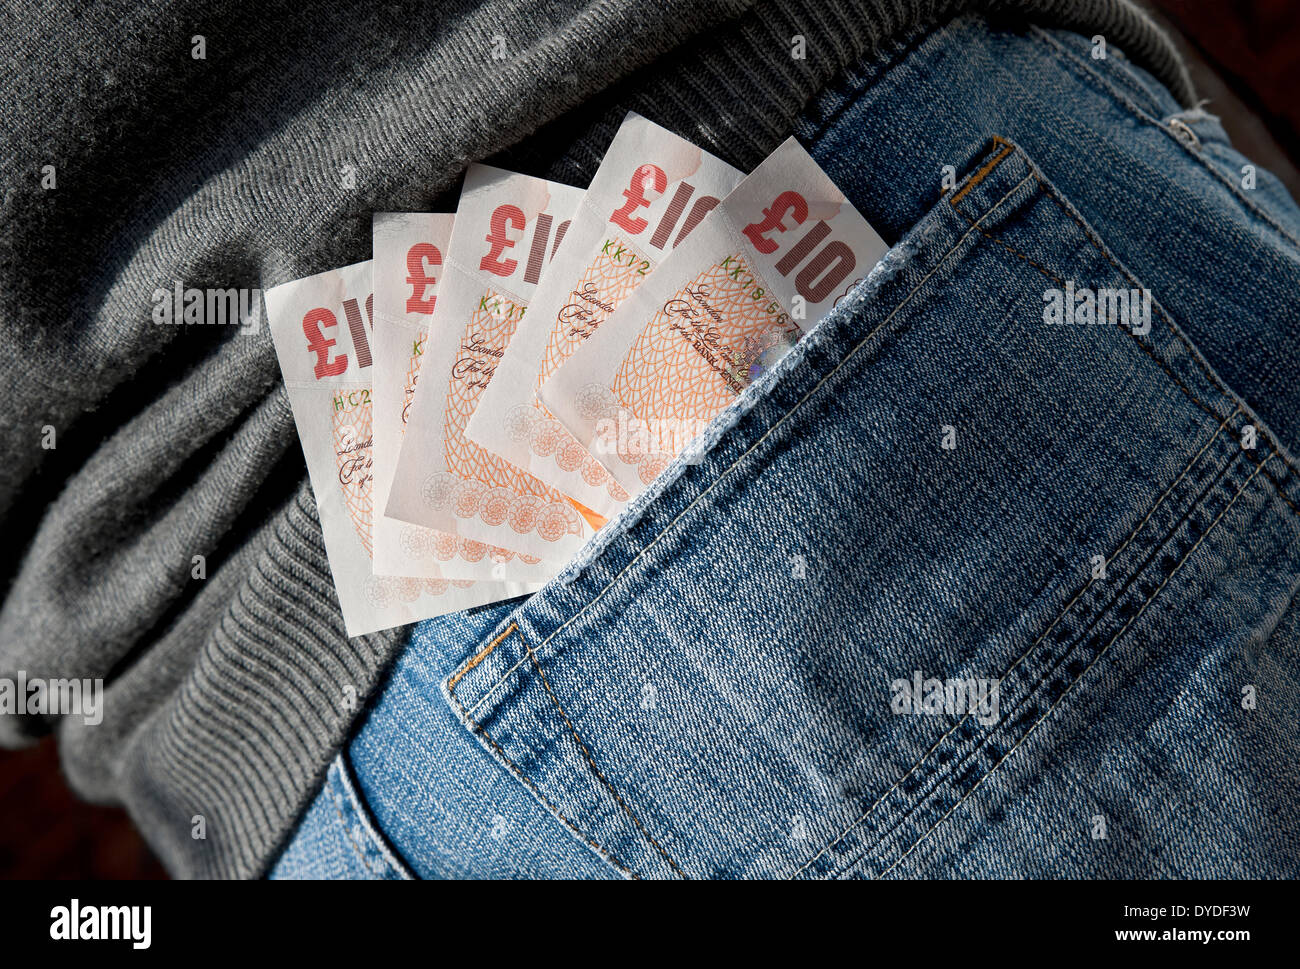 English ten pound notes in a back pocket. - Stock Image